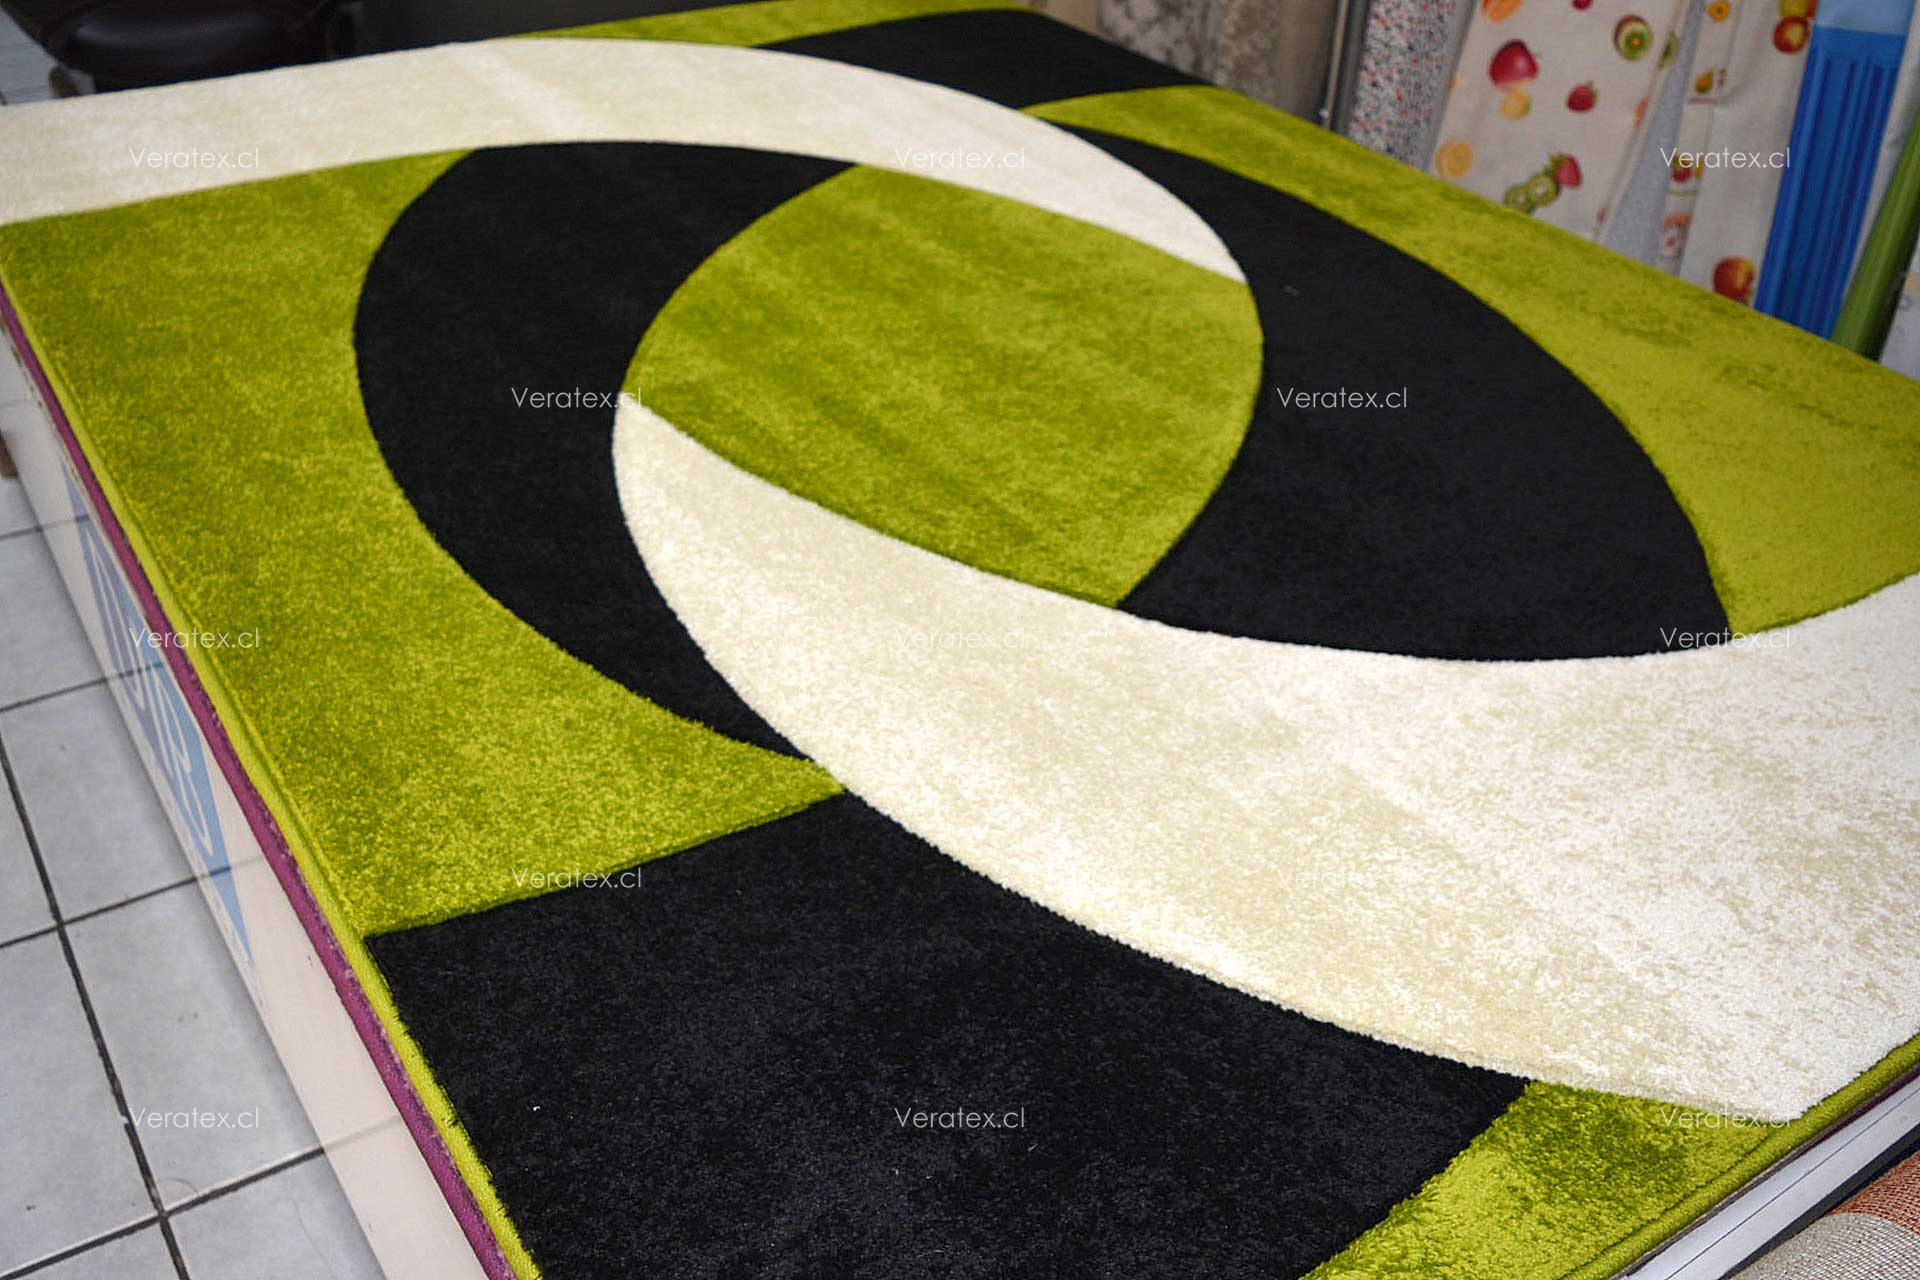 Alfombras Skywalk - Dimensiones: 1,33 x 1,80 - 1,50 x 2,00 - 1,70 x 2,30 metros